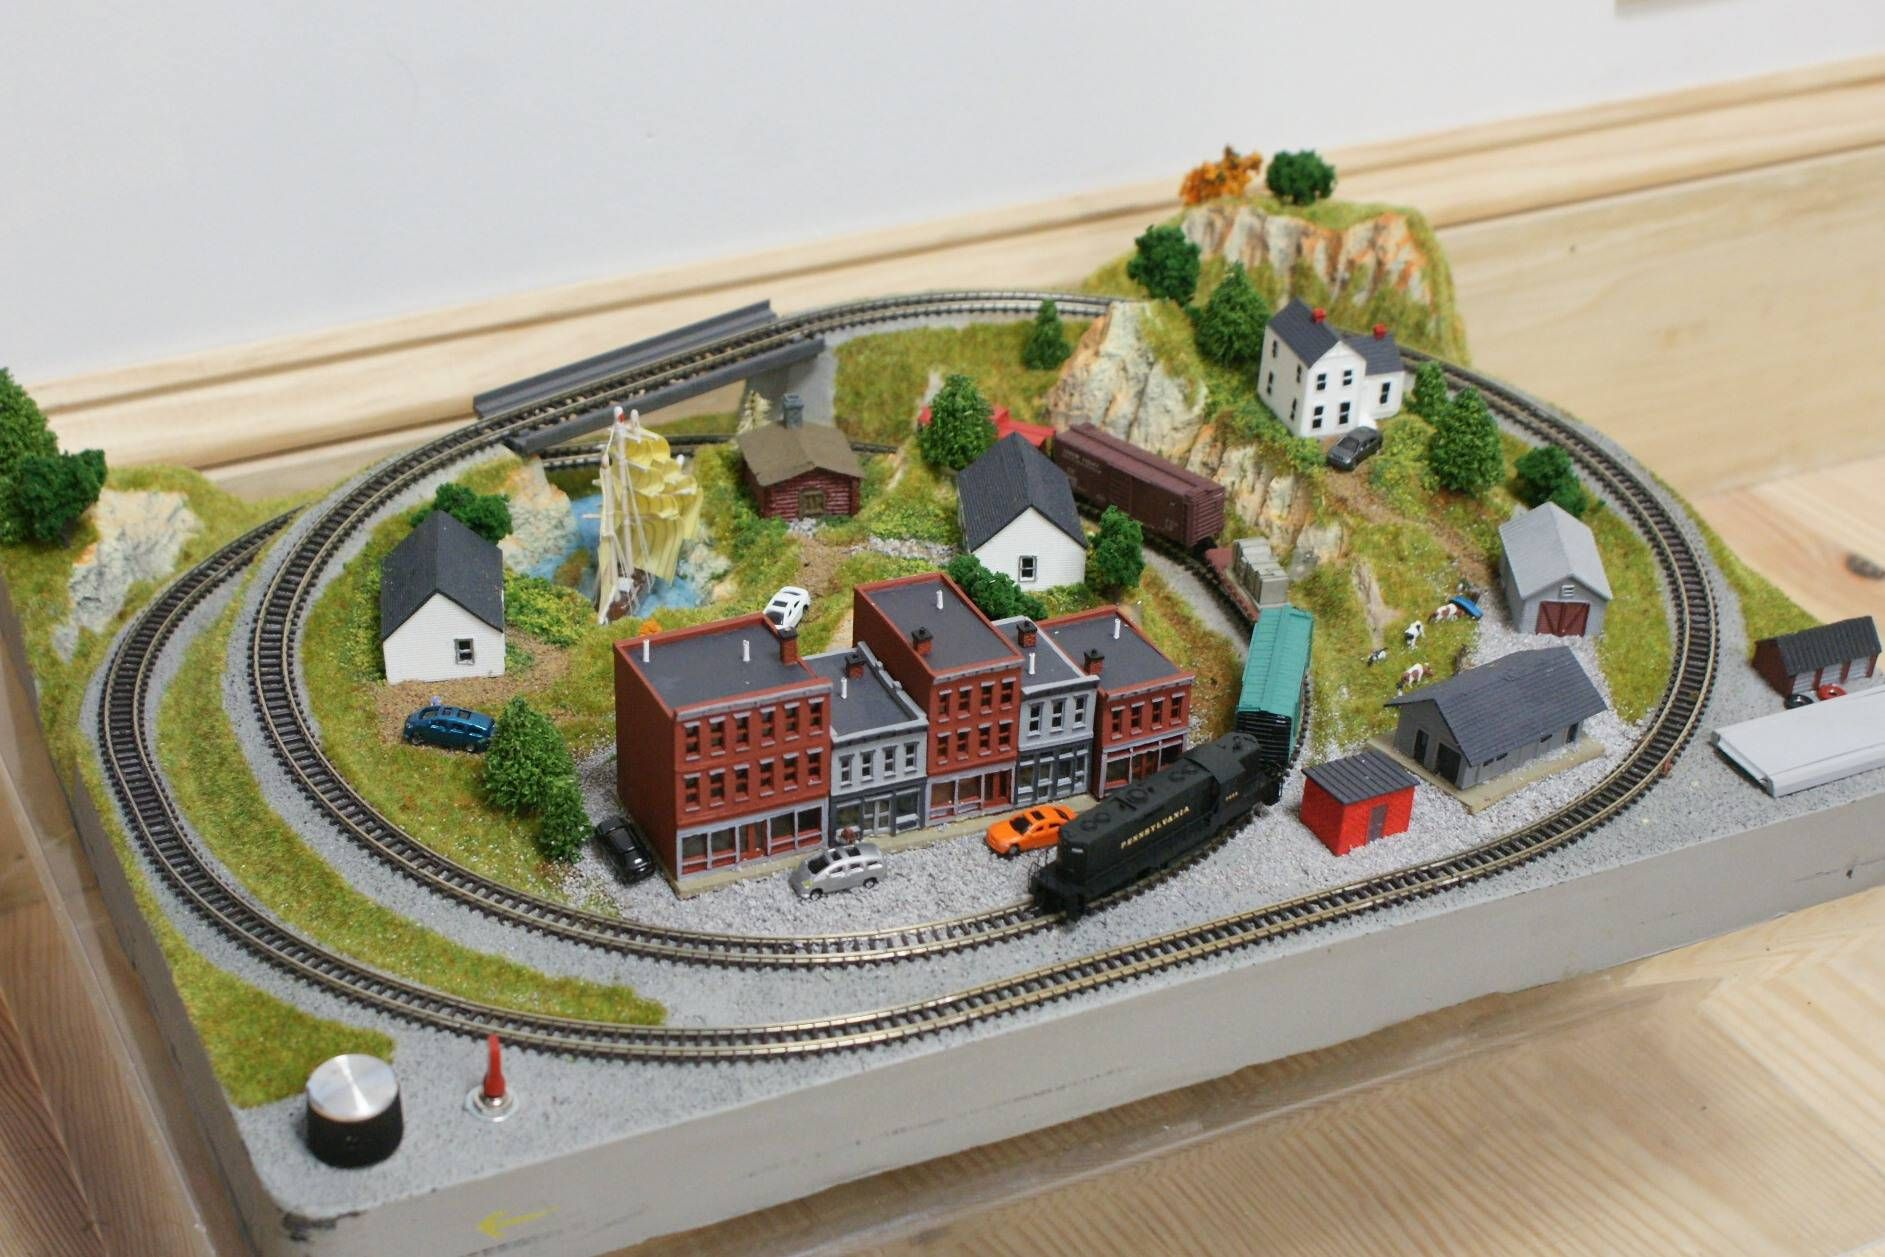 N scale trains model train layouts trains both real and model trains - Ho scale layouts for small spaces concept ...